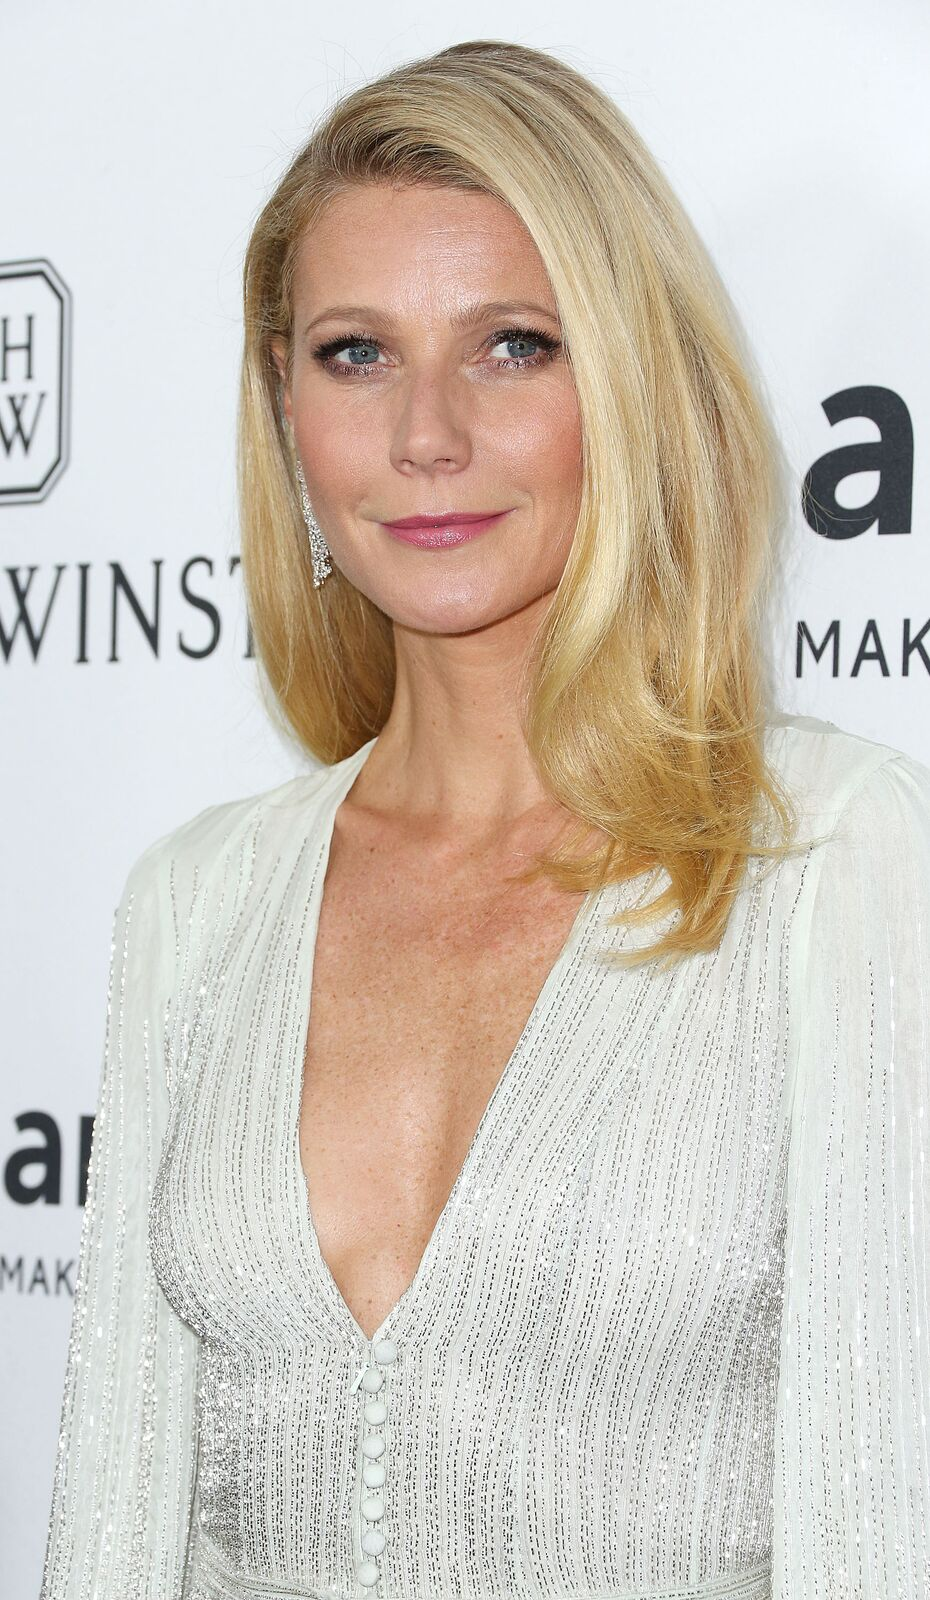 Gwyneth Paltrow attends amfAR's Inspiration Gala Los Angeles at Milk Studios on October 29, 2015 in Hollywood, California. | Source: Getty Images